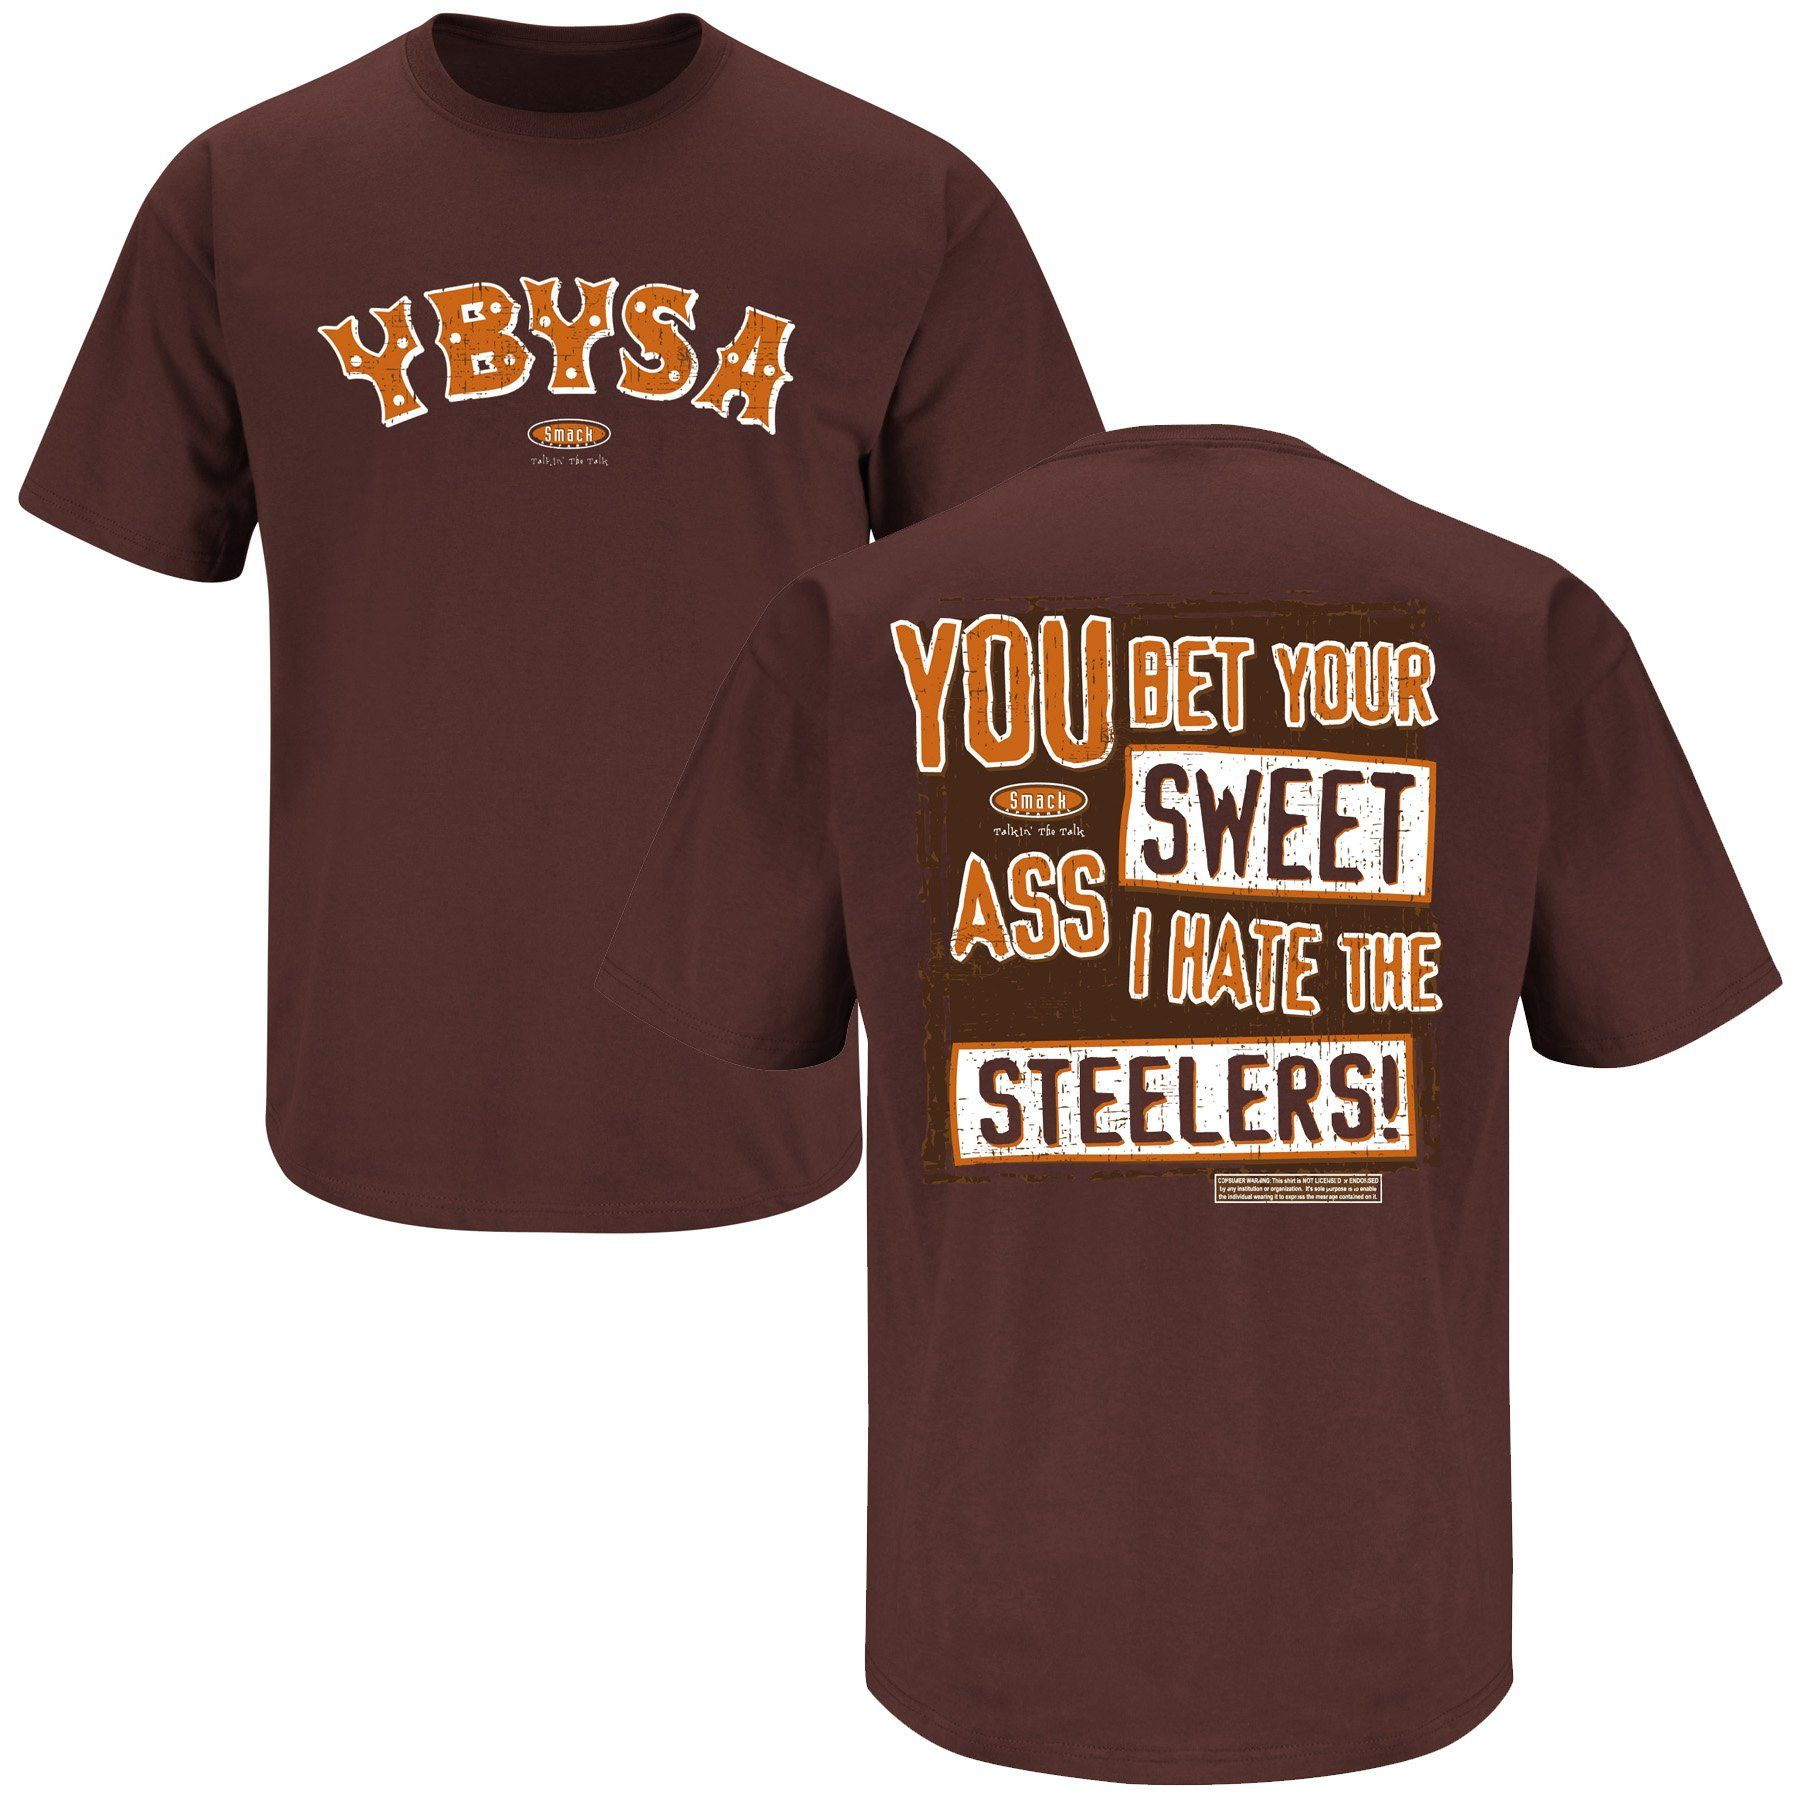 You Bet Your Sweet Ass I hate the Steelers Cleveland Browns Fan T Shirt (3XL